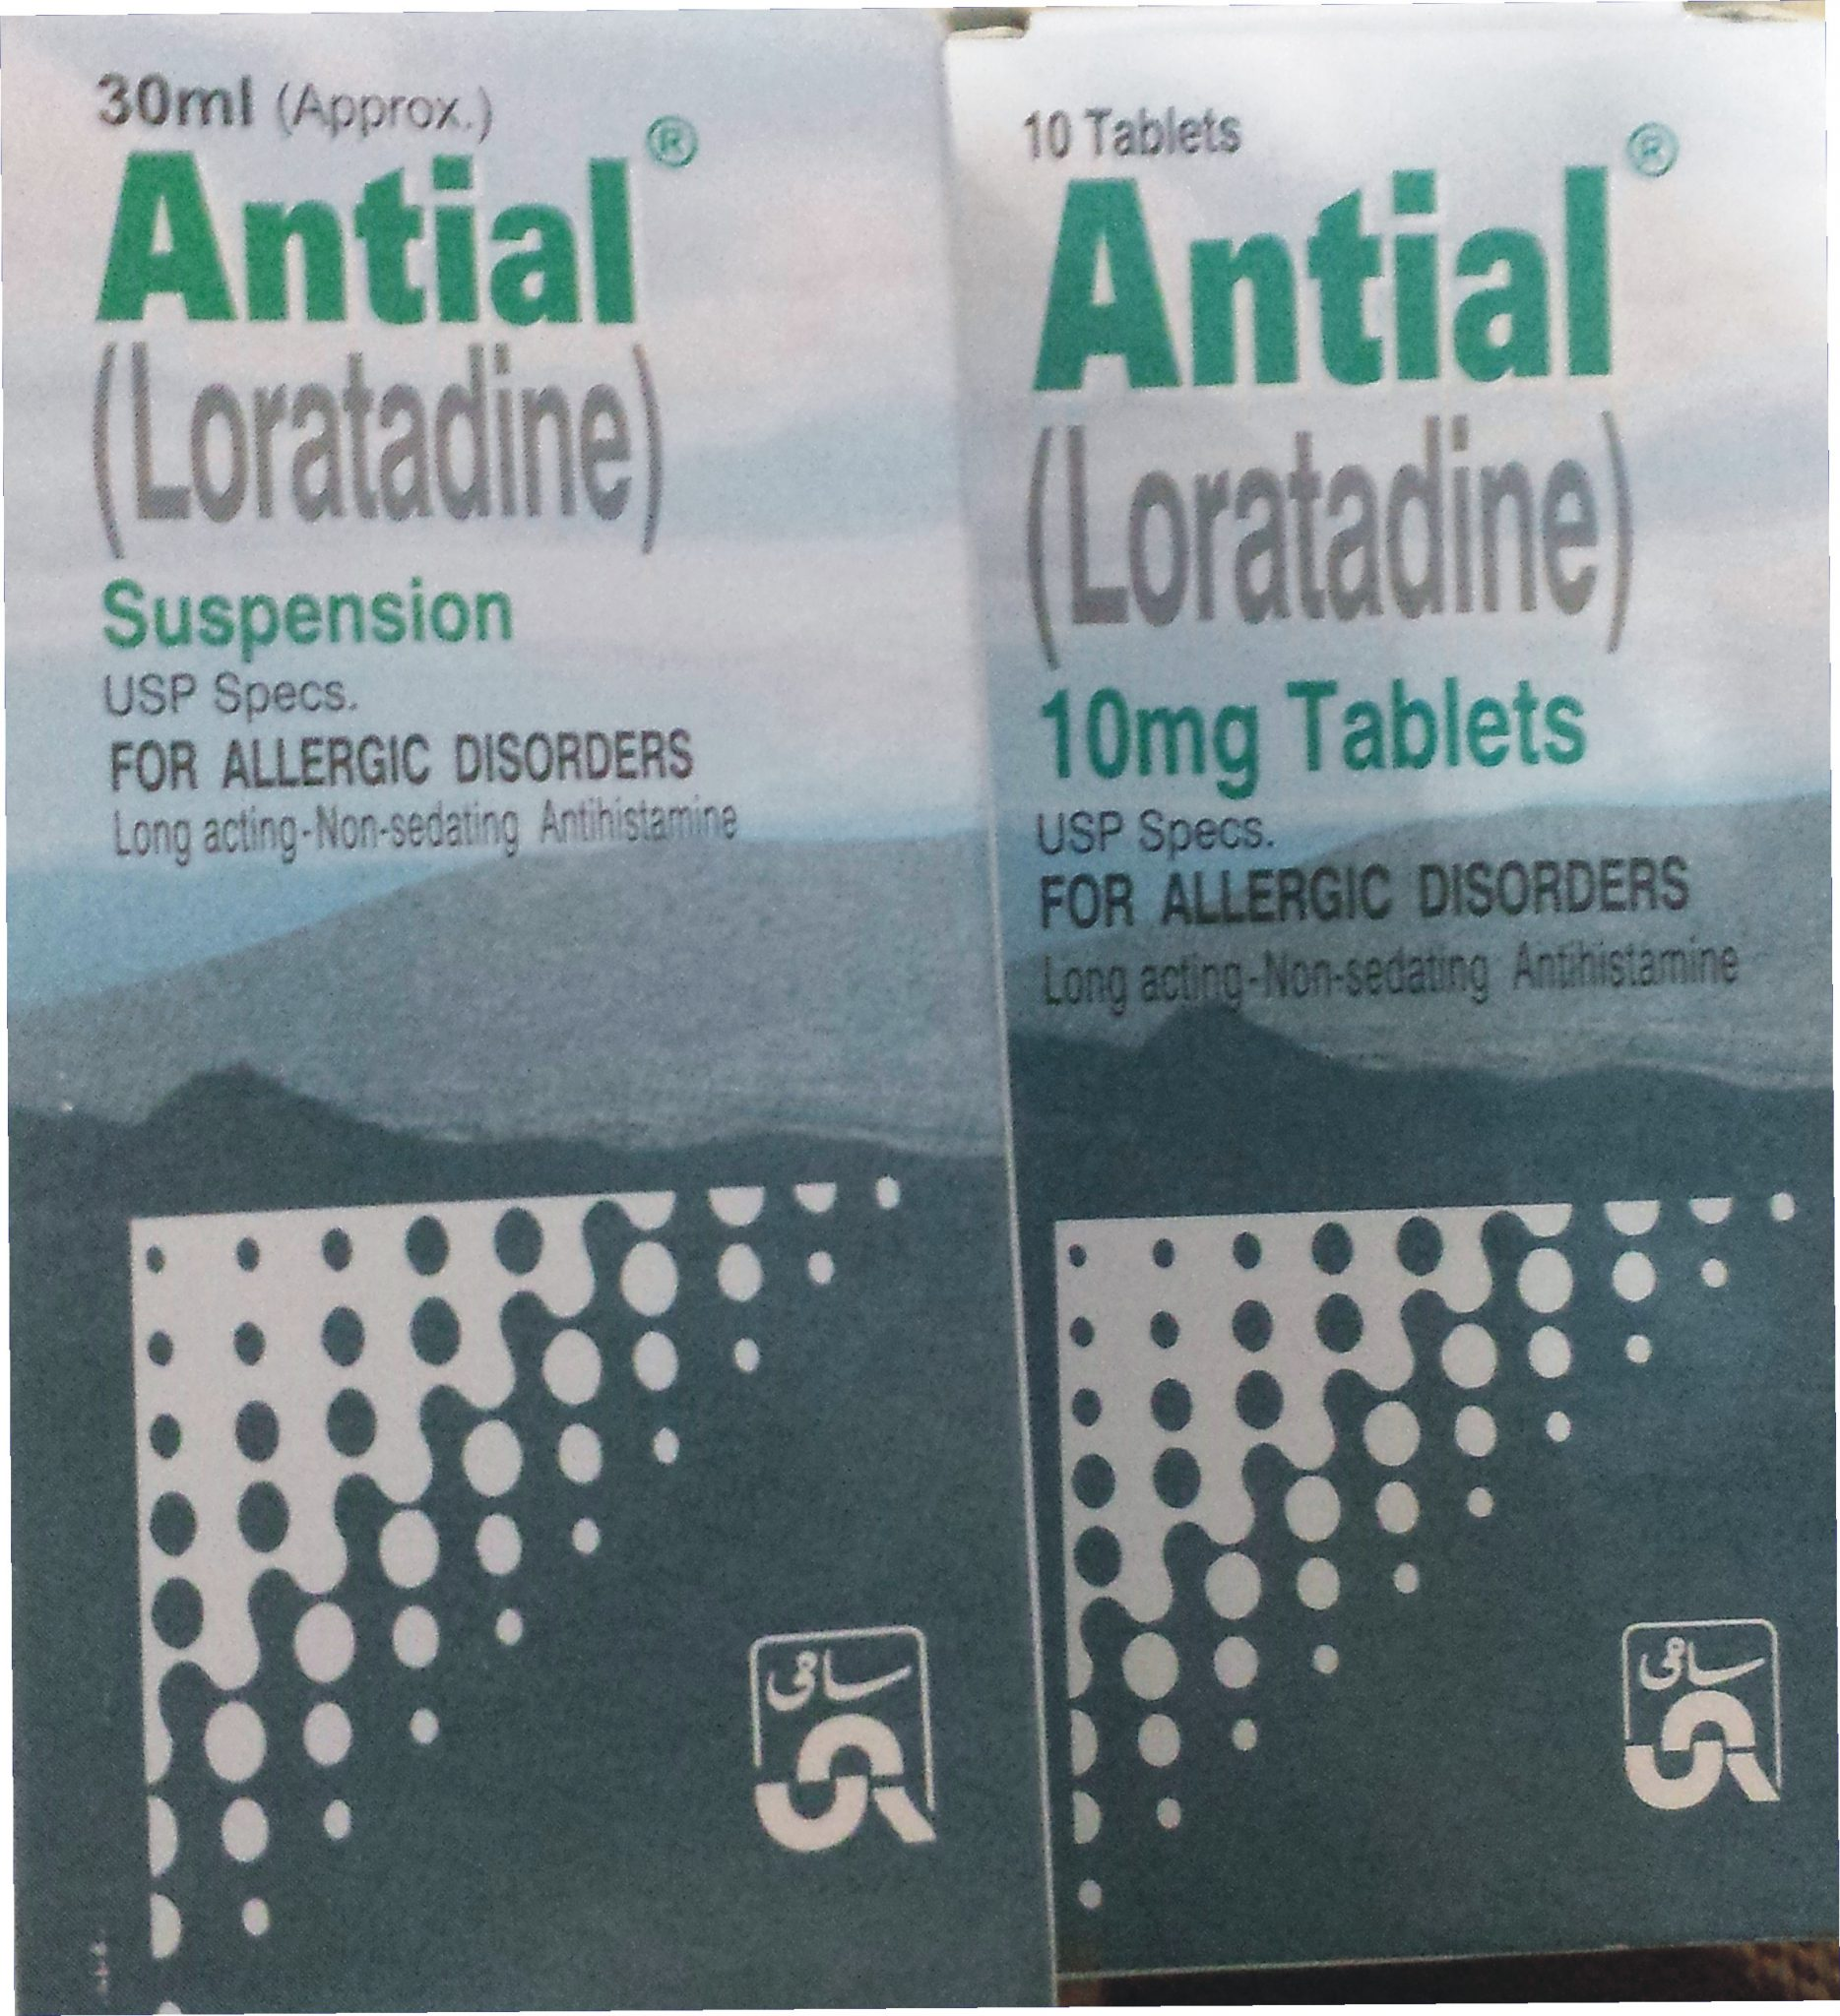 Antial tablet Loratadine Oral Uses Side Effects Dose precaution Warning